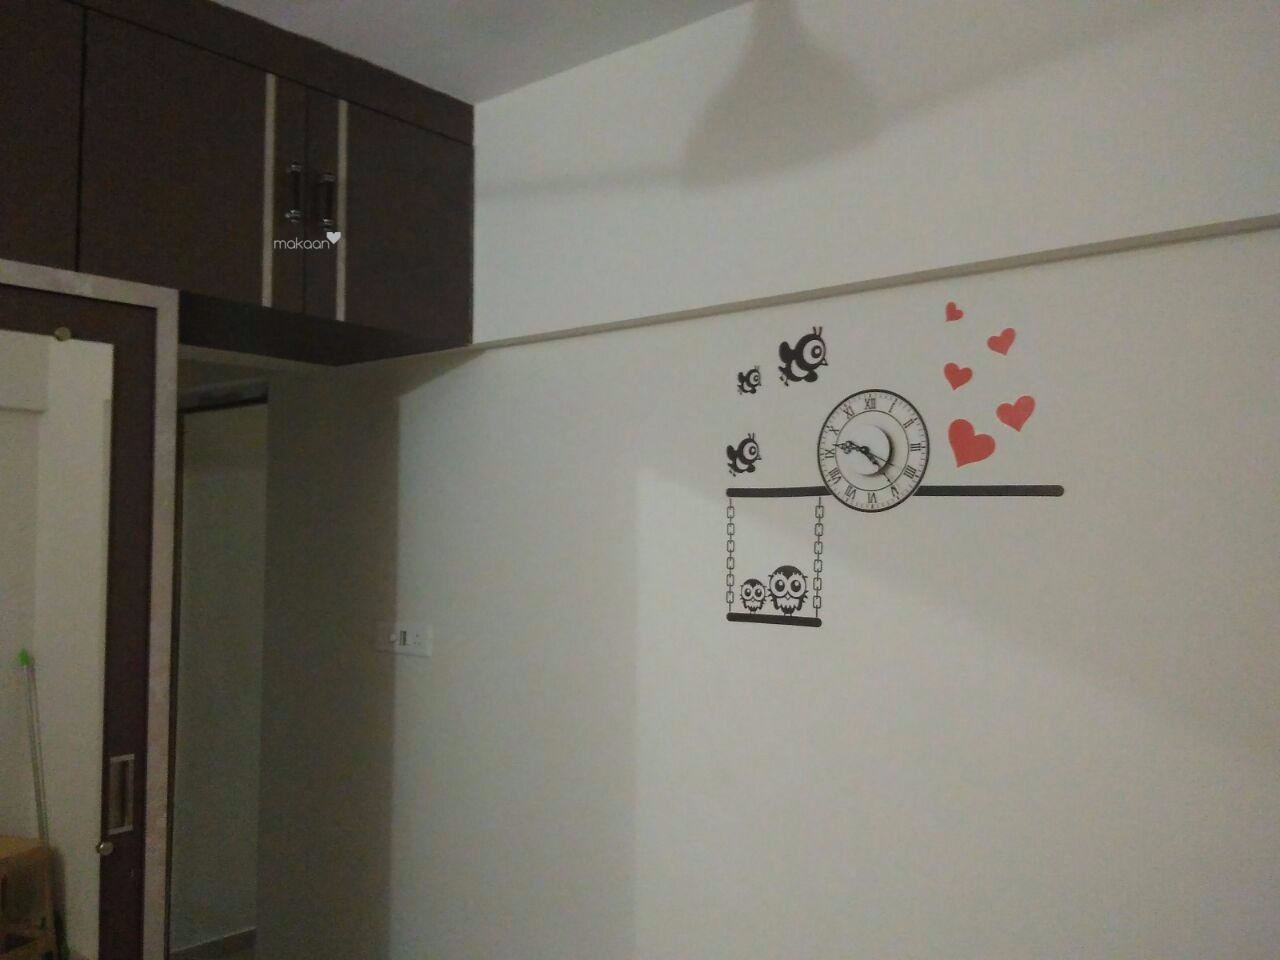 1750 sq ft 3BHK 3BHK+2T (1,750 sq ft) + Study Room Property By Shree Real Estate In Project, Ghansoli